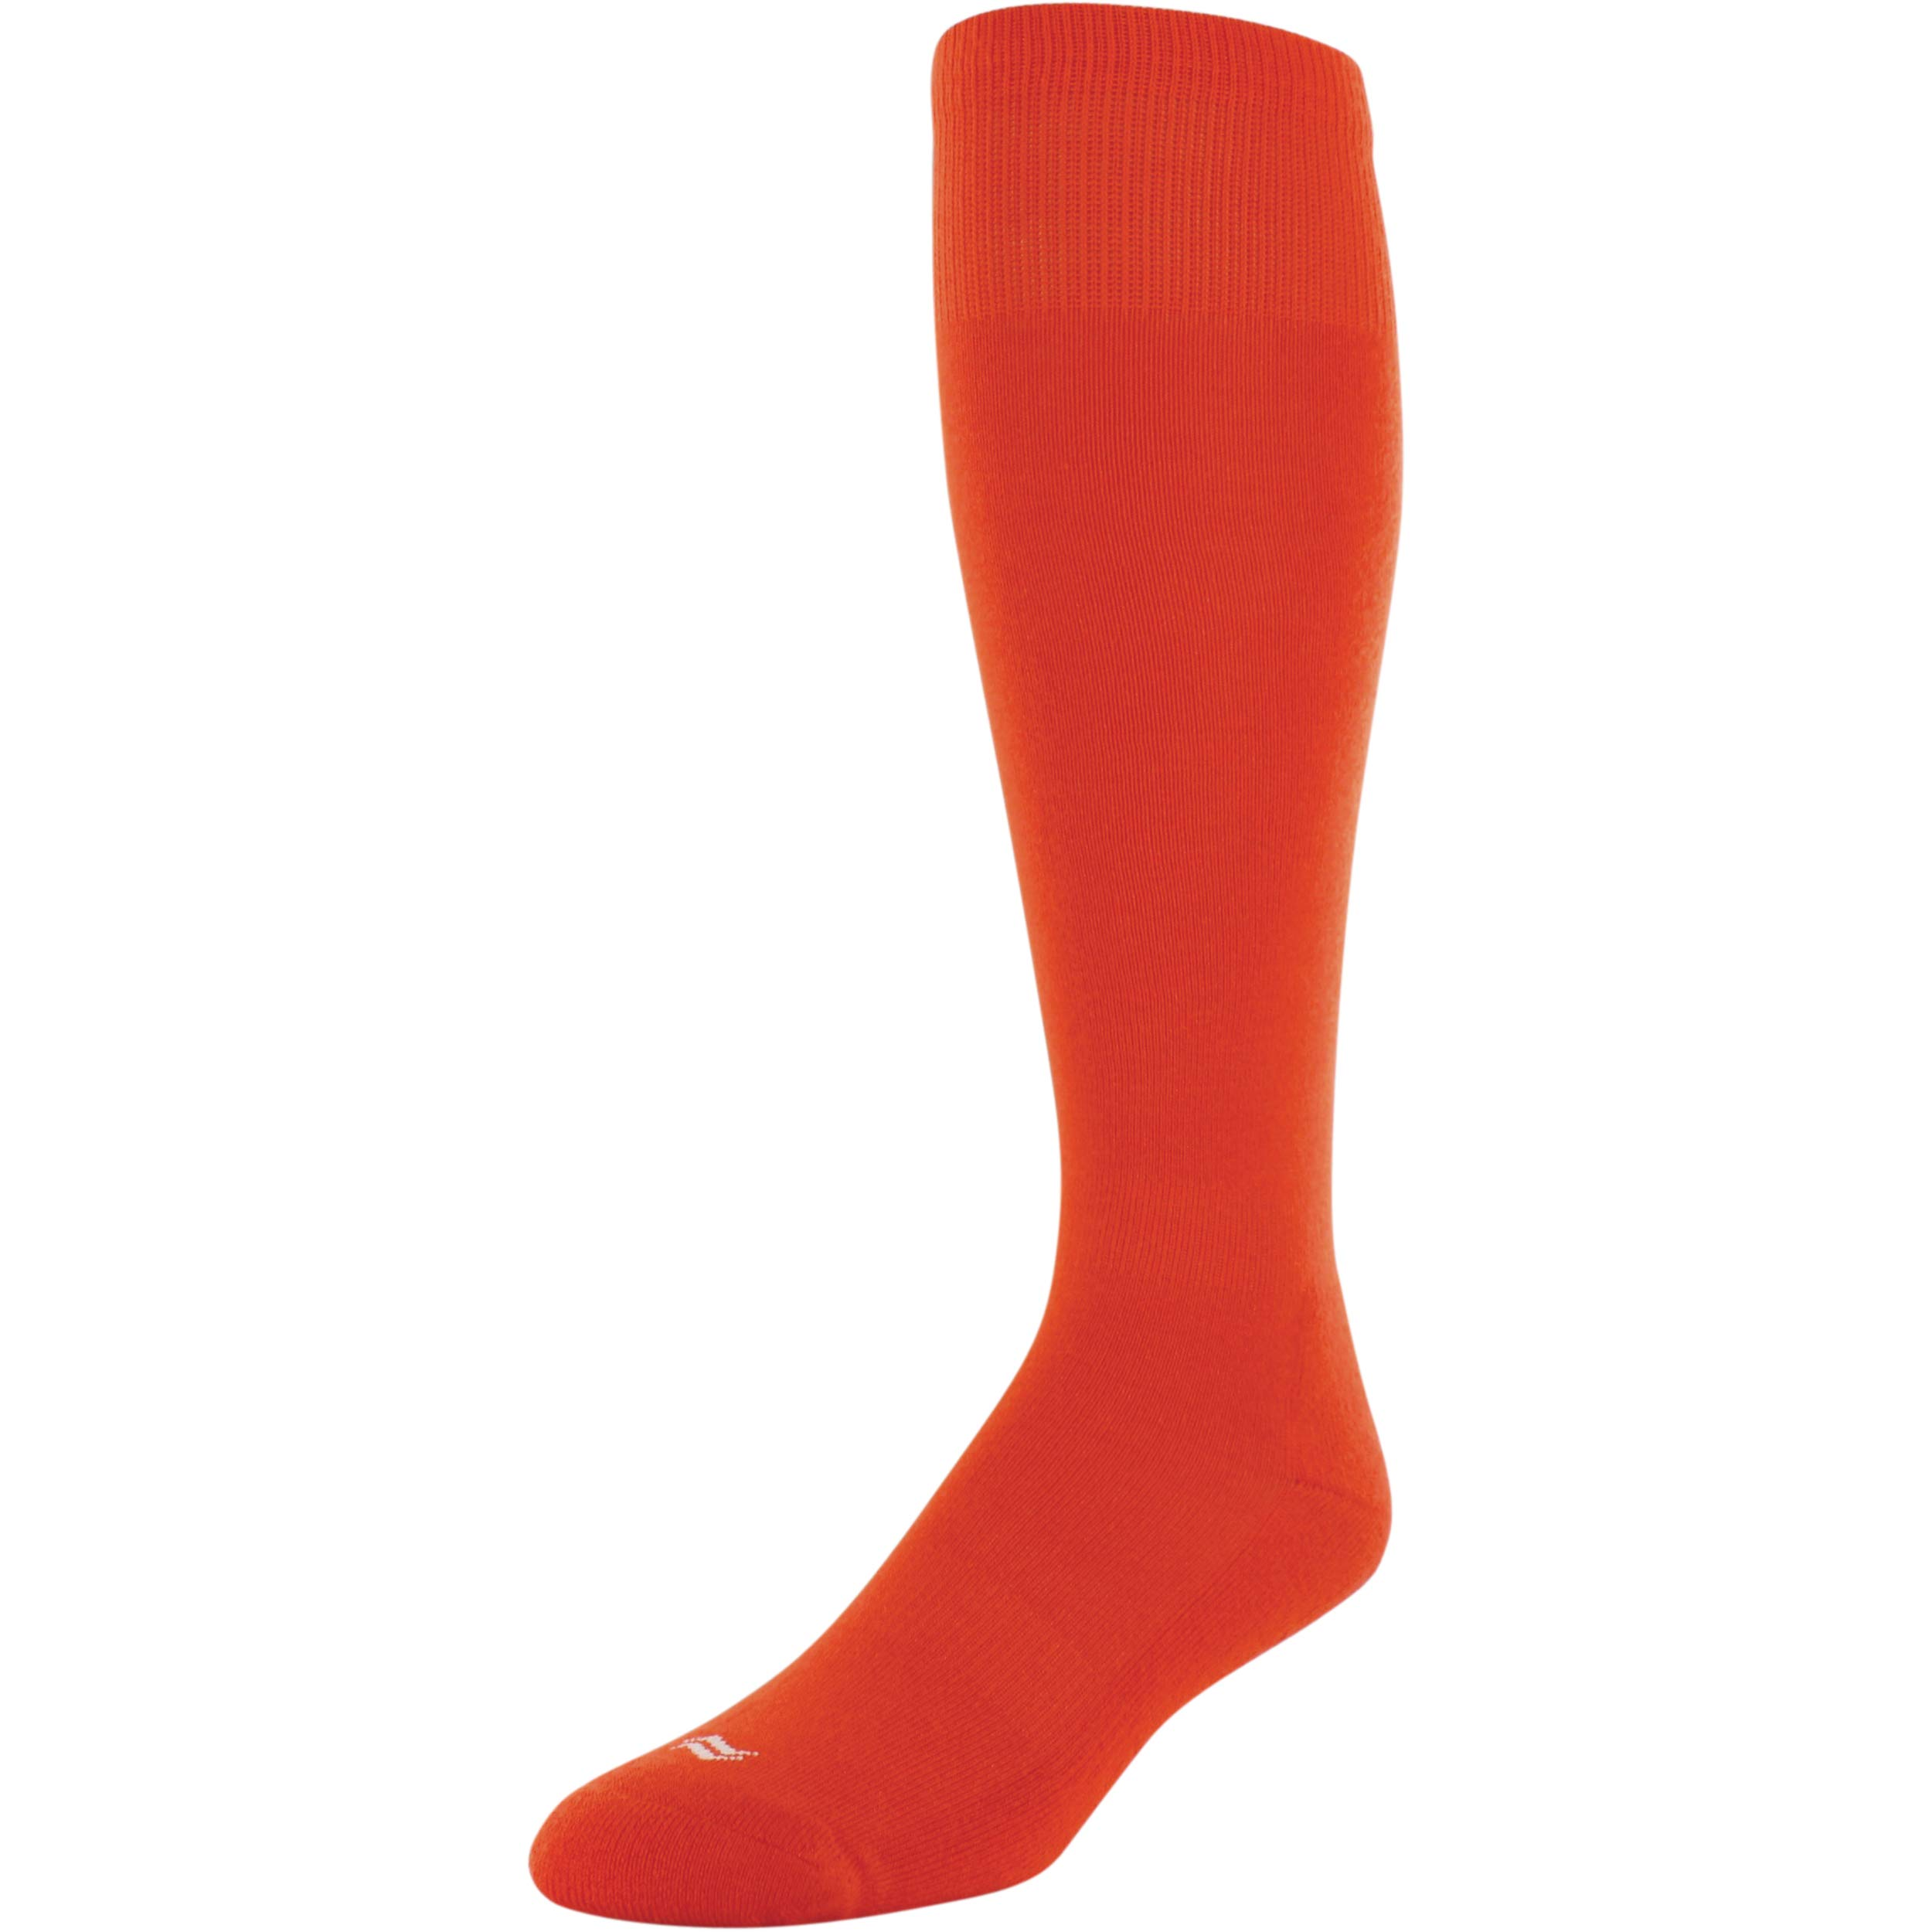 Sof Sole Adult Baseball Socks - Large - 2 Pair - Orange 10-13 by Sof Sole